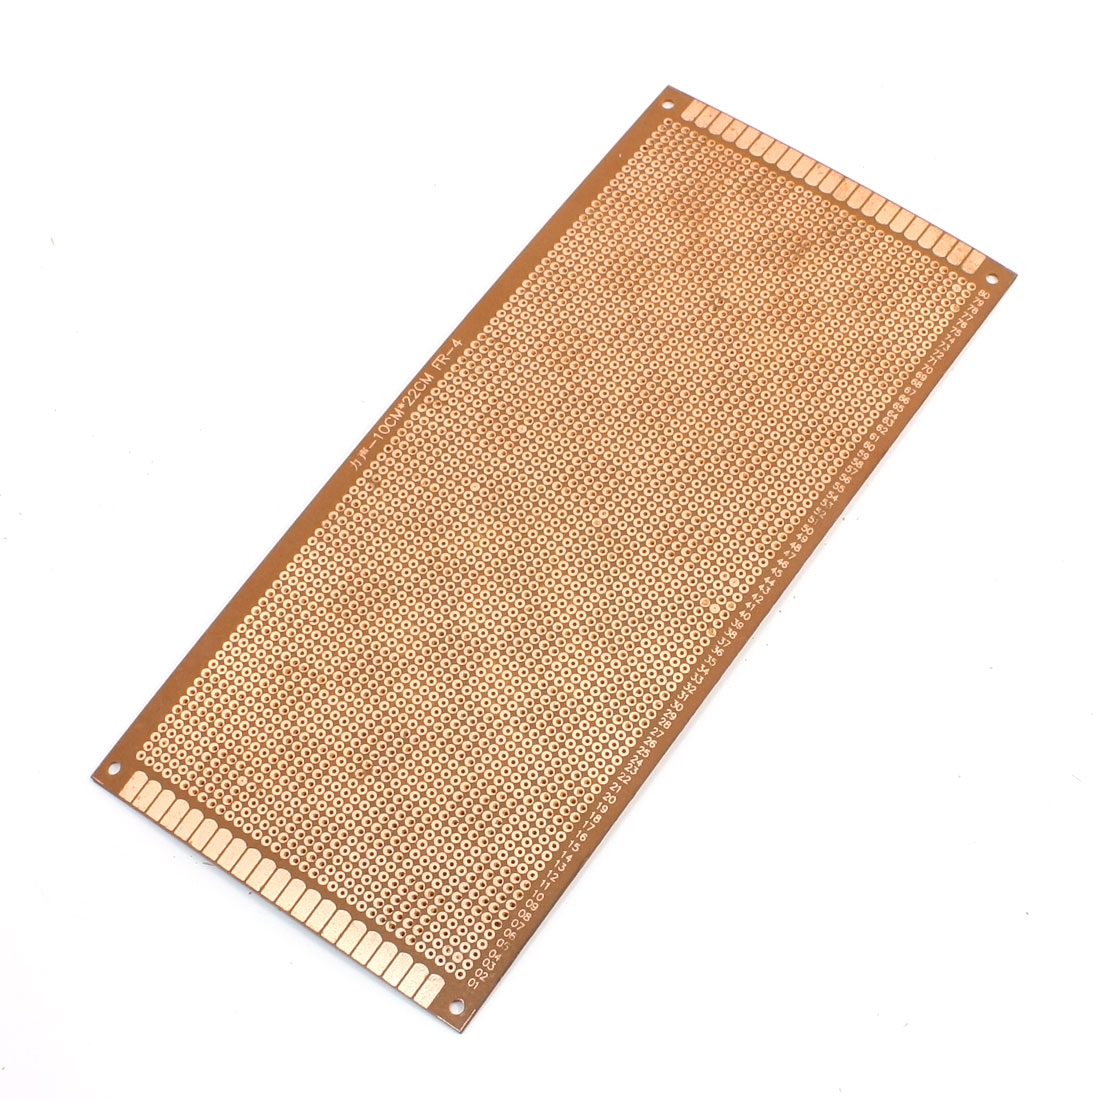 2.54mm Pitch PCB Board Prototype Breadboard Single Side 100mm x 220mm Brown